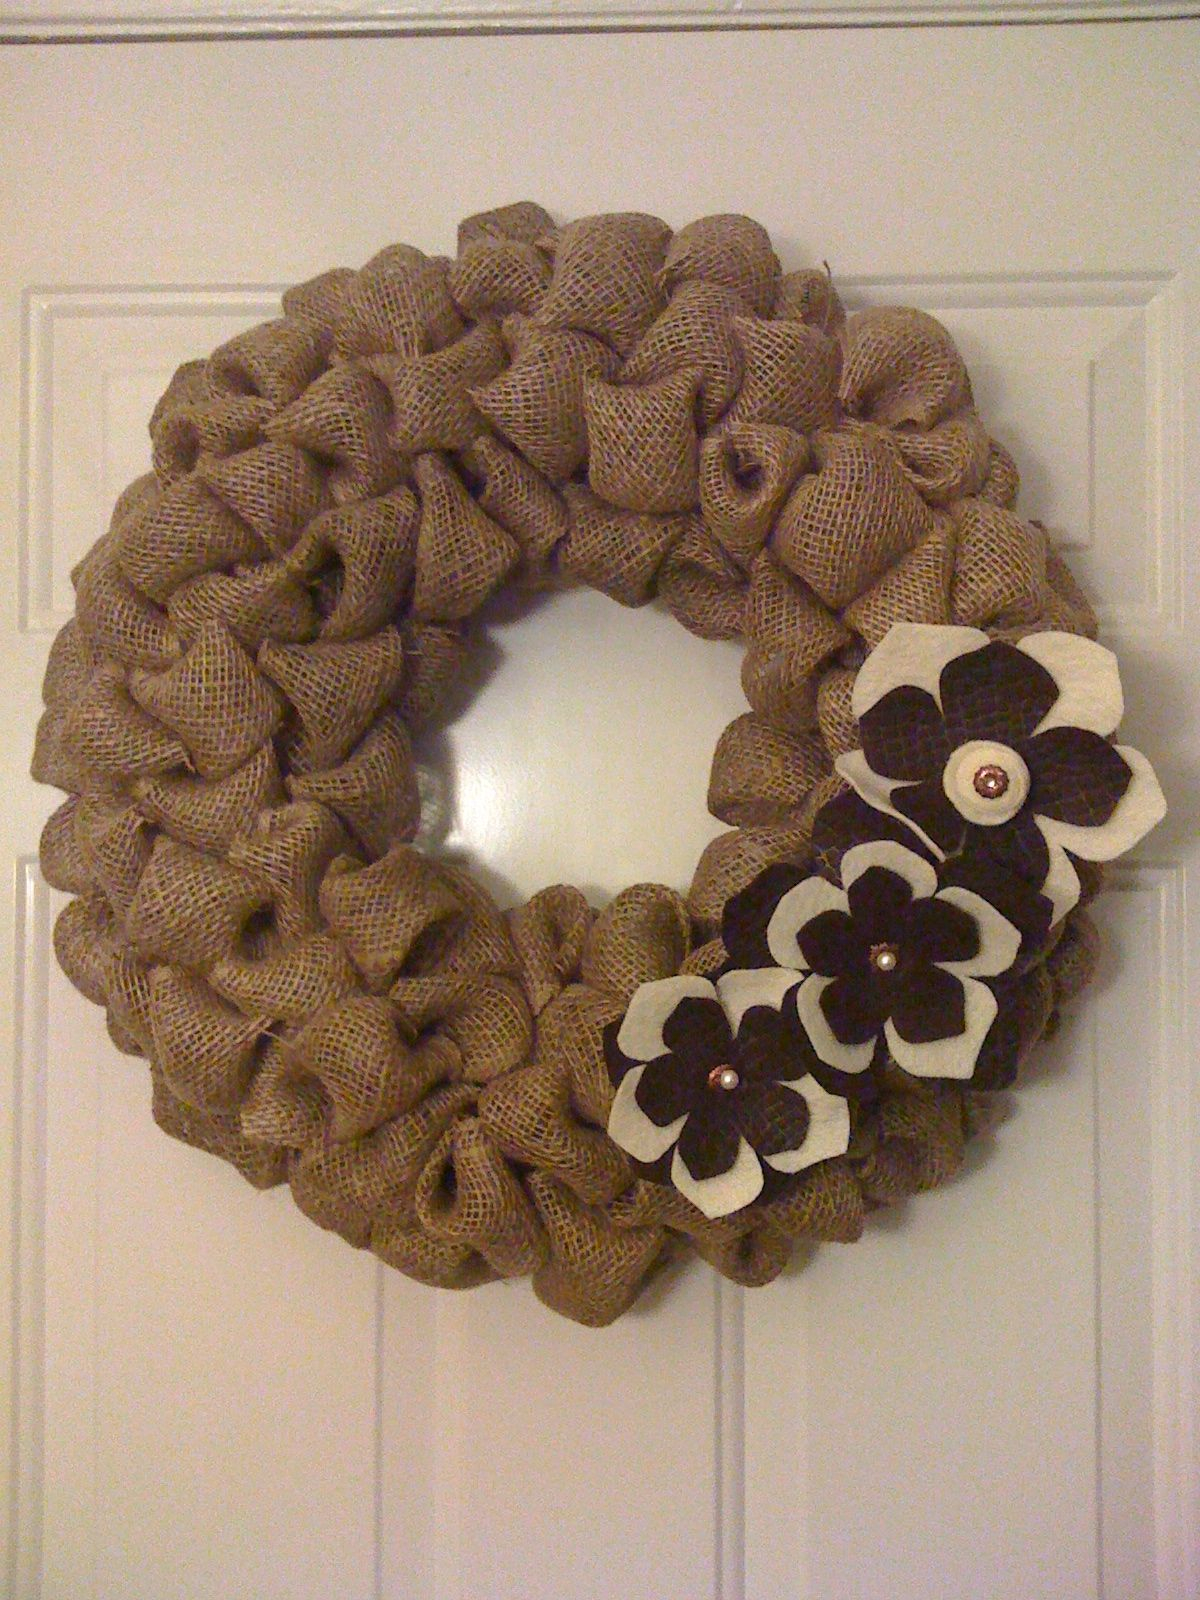 Burlap wreath crafts diy pinterest for What to make with burlap